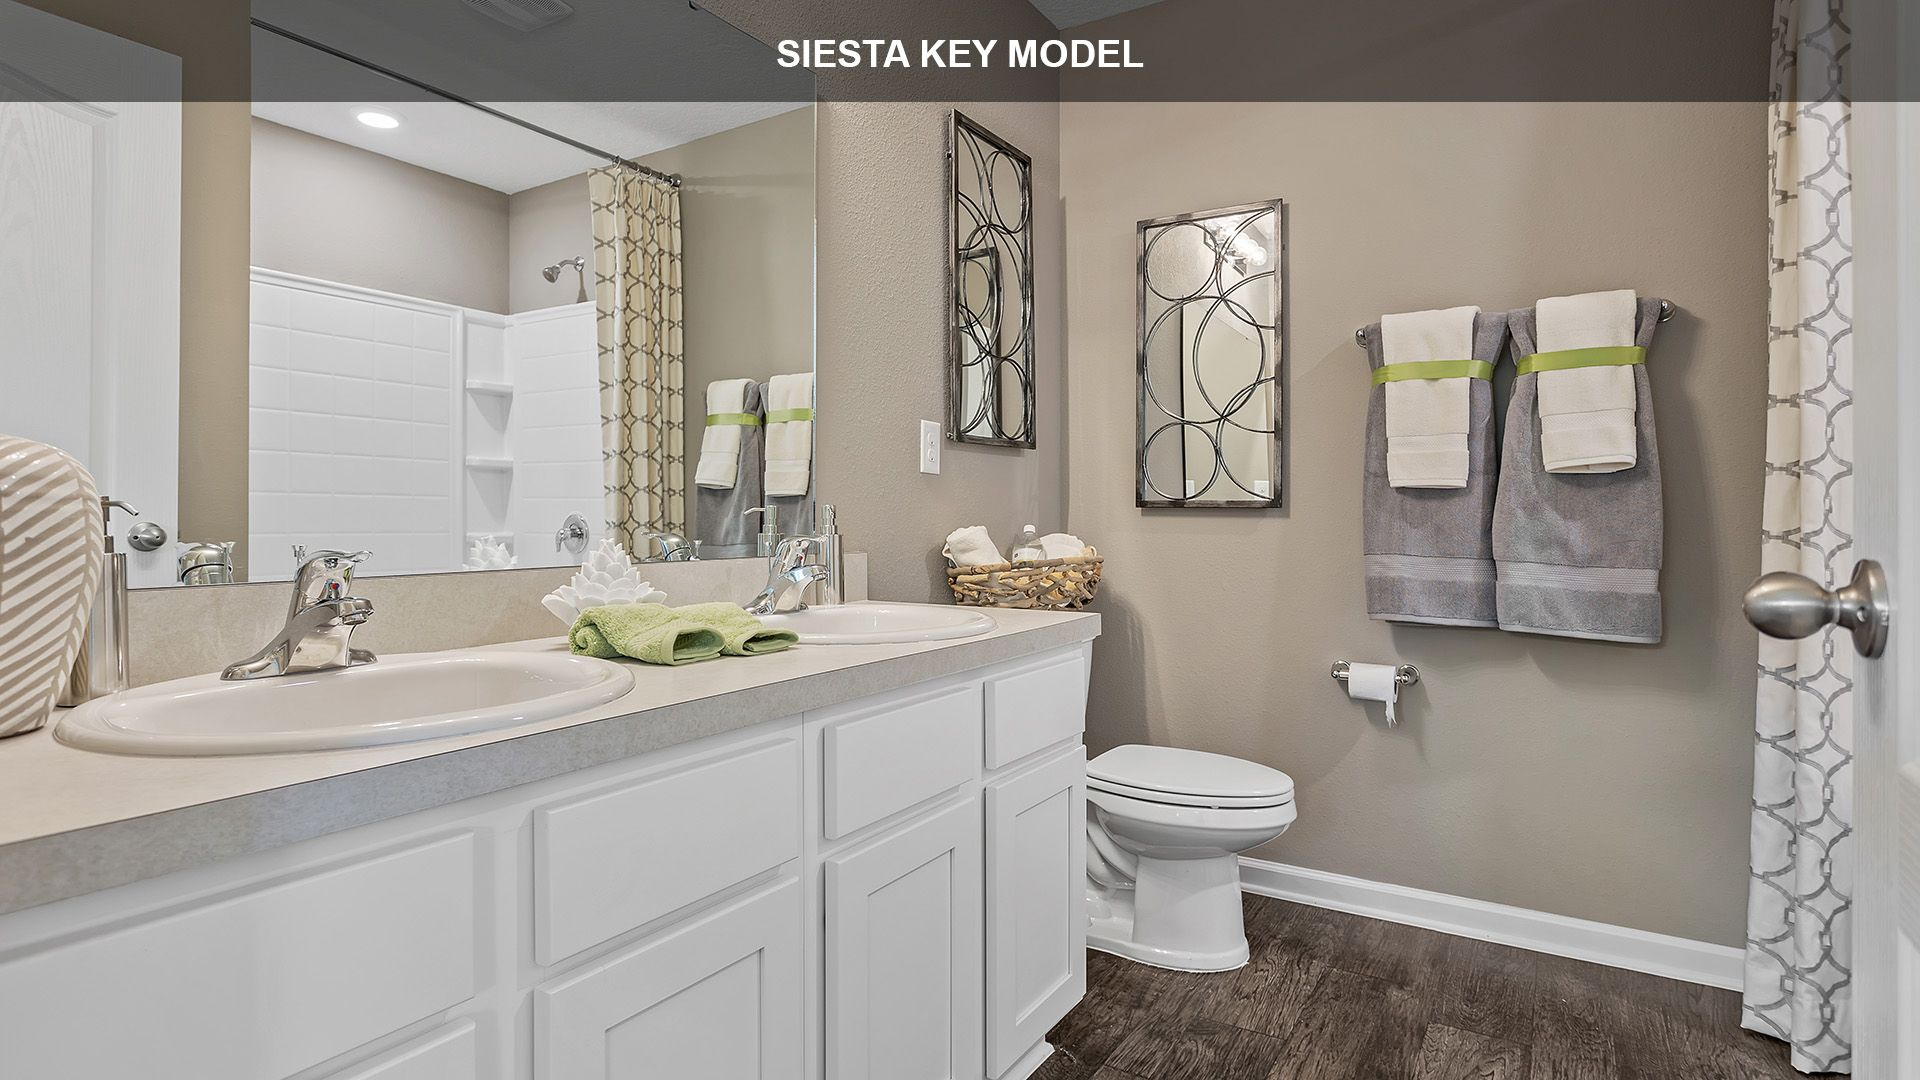 Bathroom featured in the SIESTA KEY By D.R. Horton in Jacksonville-St. Augustine, FL